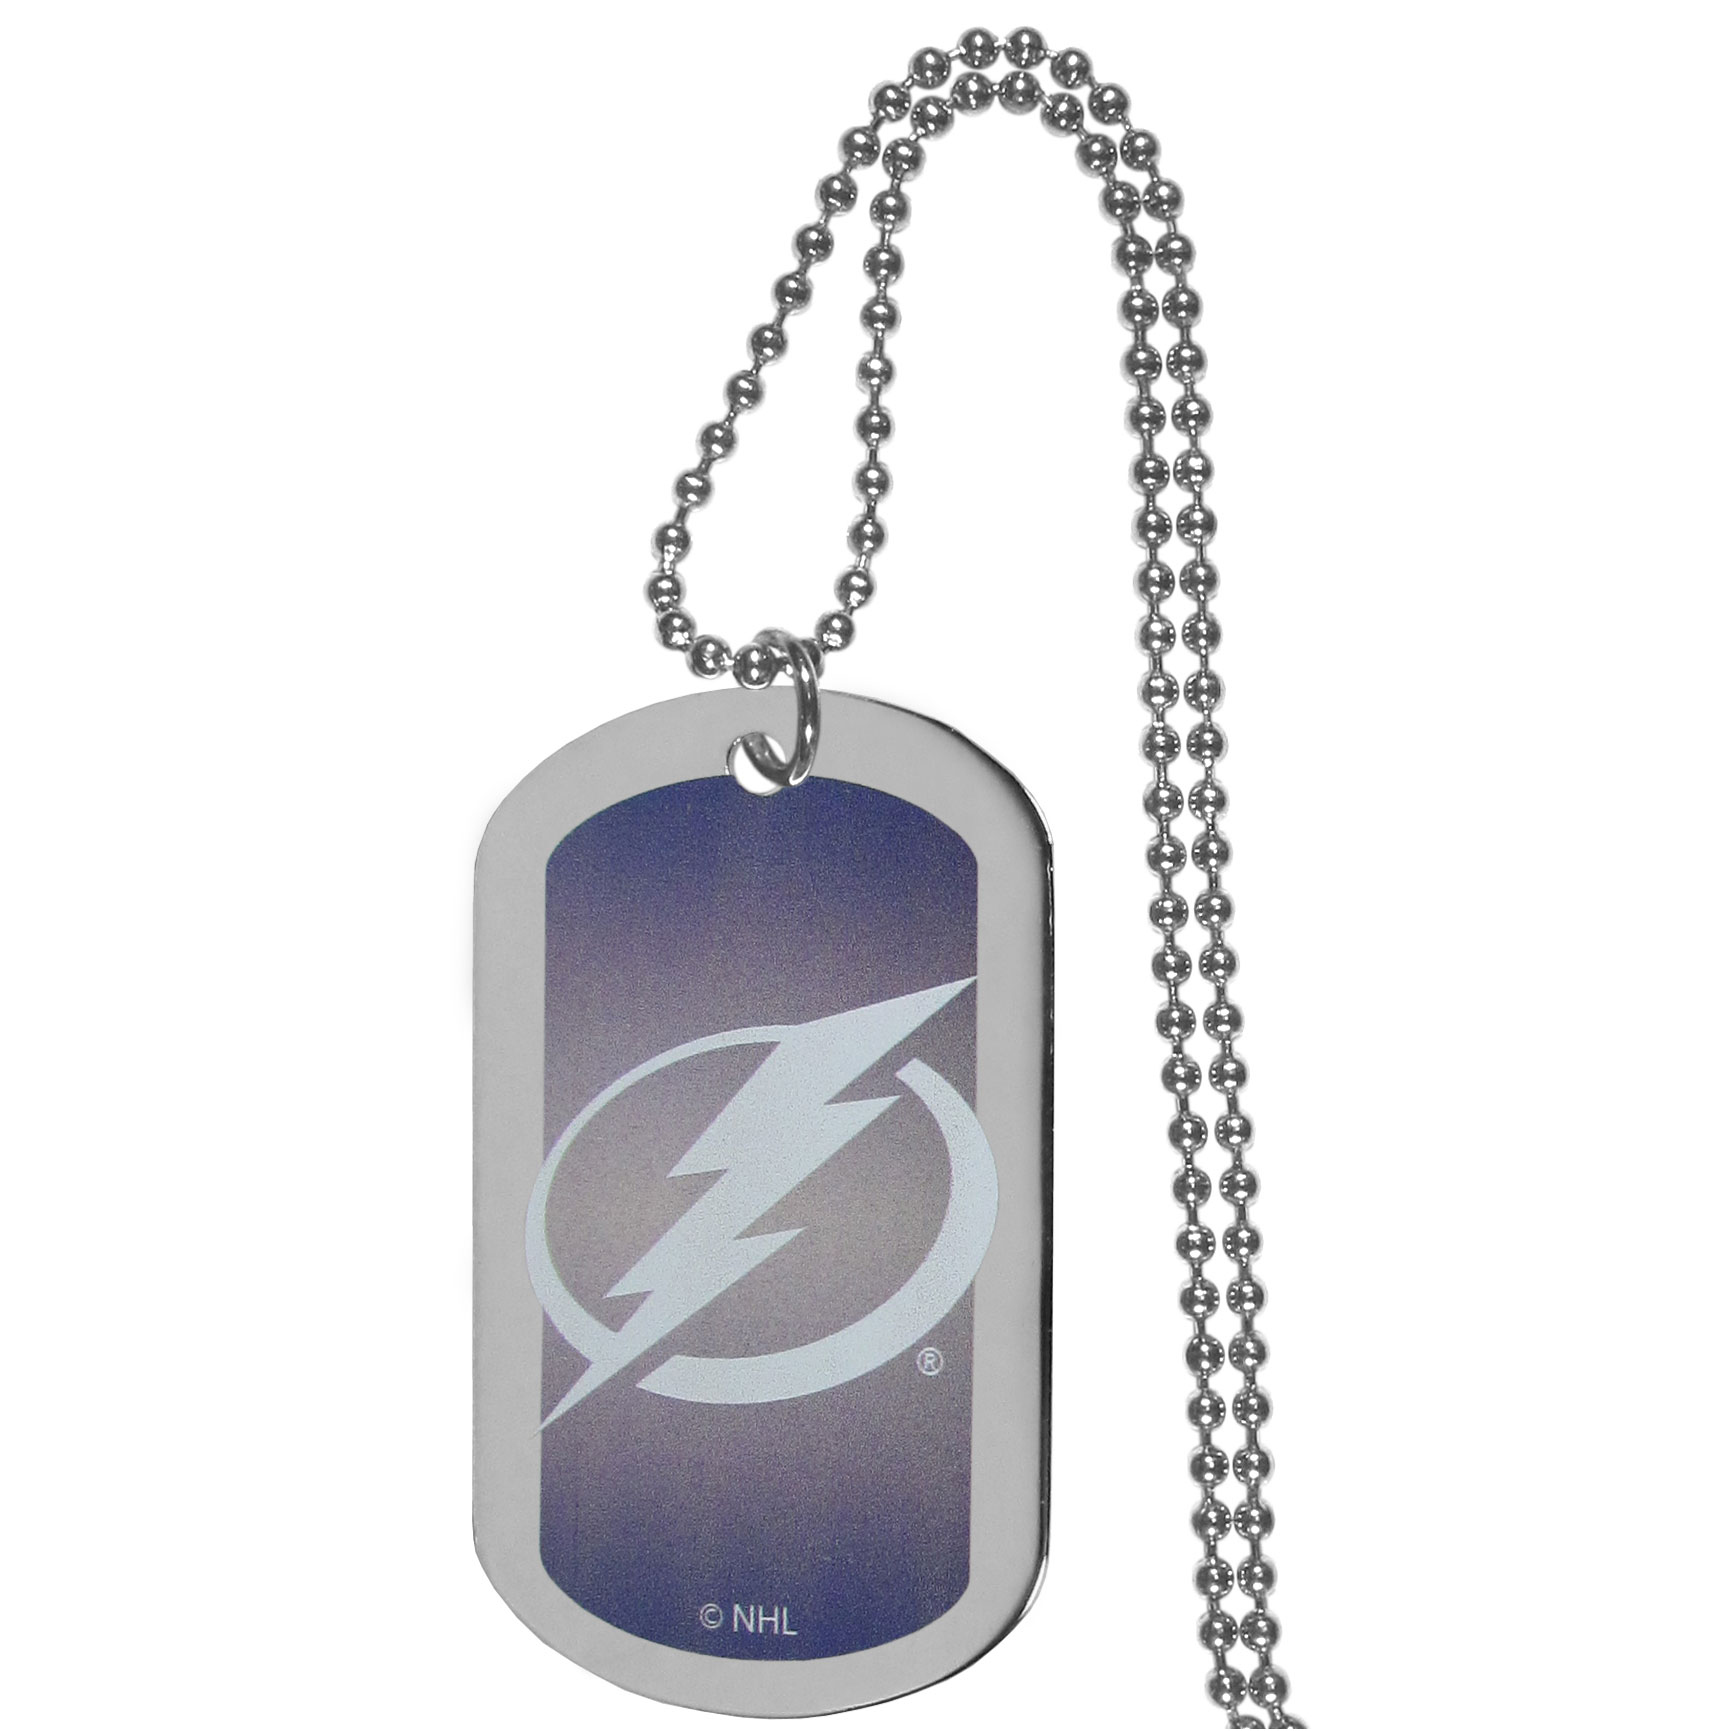 Tampa Bay Lightning® Team Tag Necklace - Dog tag necklaces are a fashion statement that is here to stay. The sporty version of the classic tag features a gradient print in team colors featuring a full color team logo over a high polish tag to create a bold and sporty look. The tag comes on a 26 inch ball chain with a ball and joint clasp. Any Tampa Bay Lightning® would be proud to wear this attractive fashion accessory.